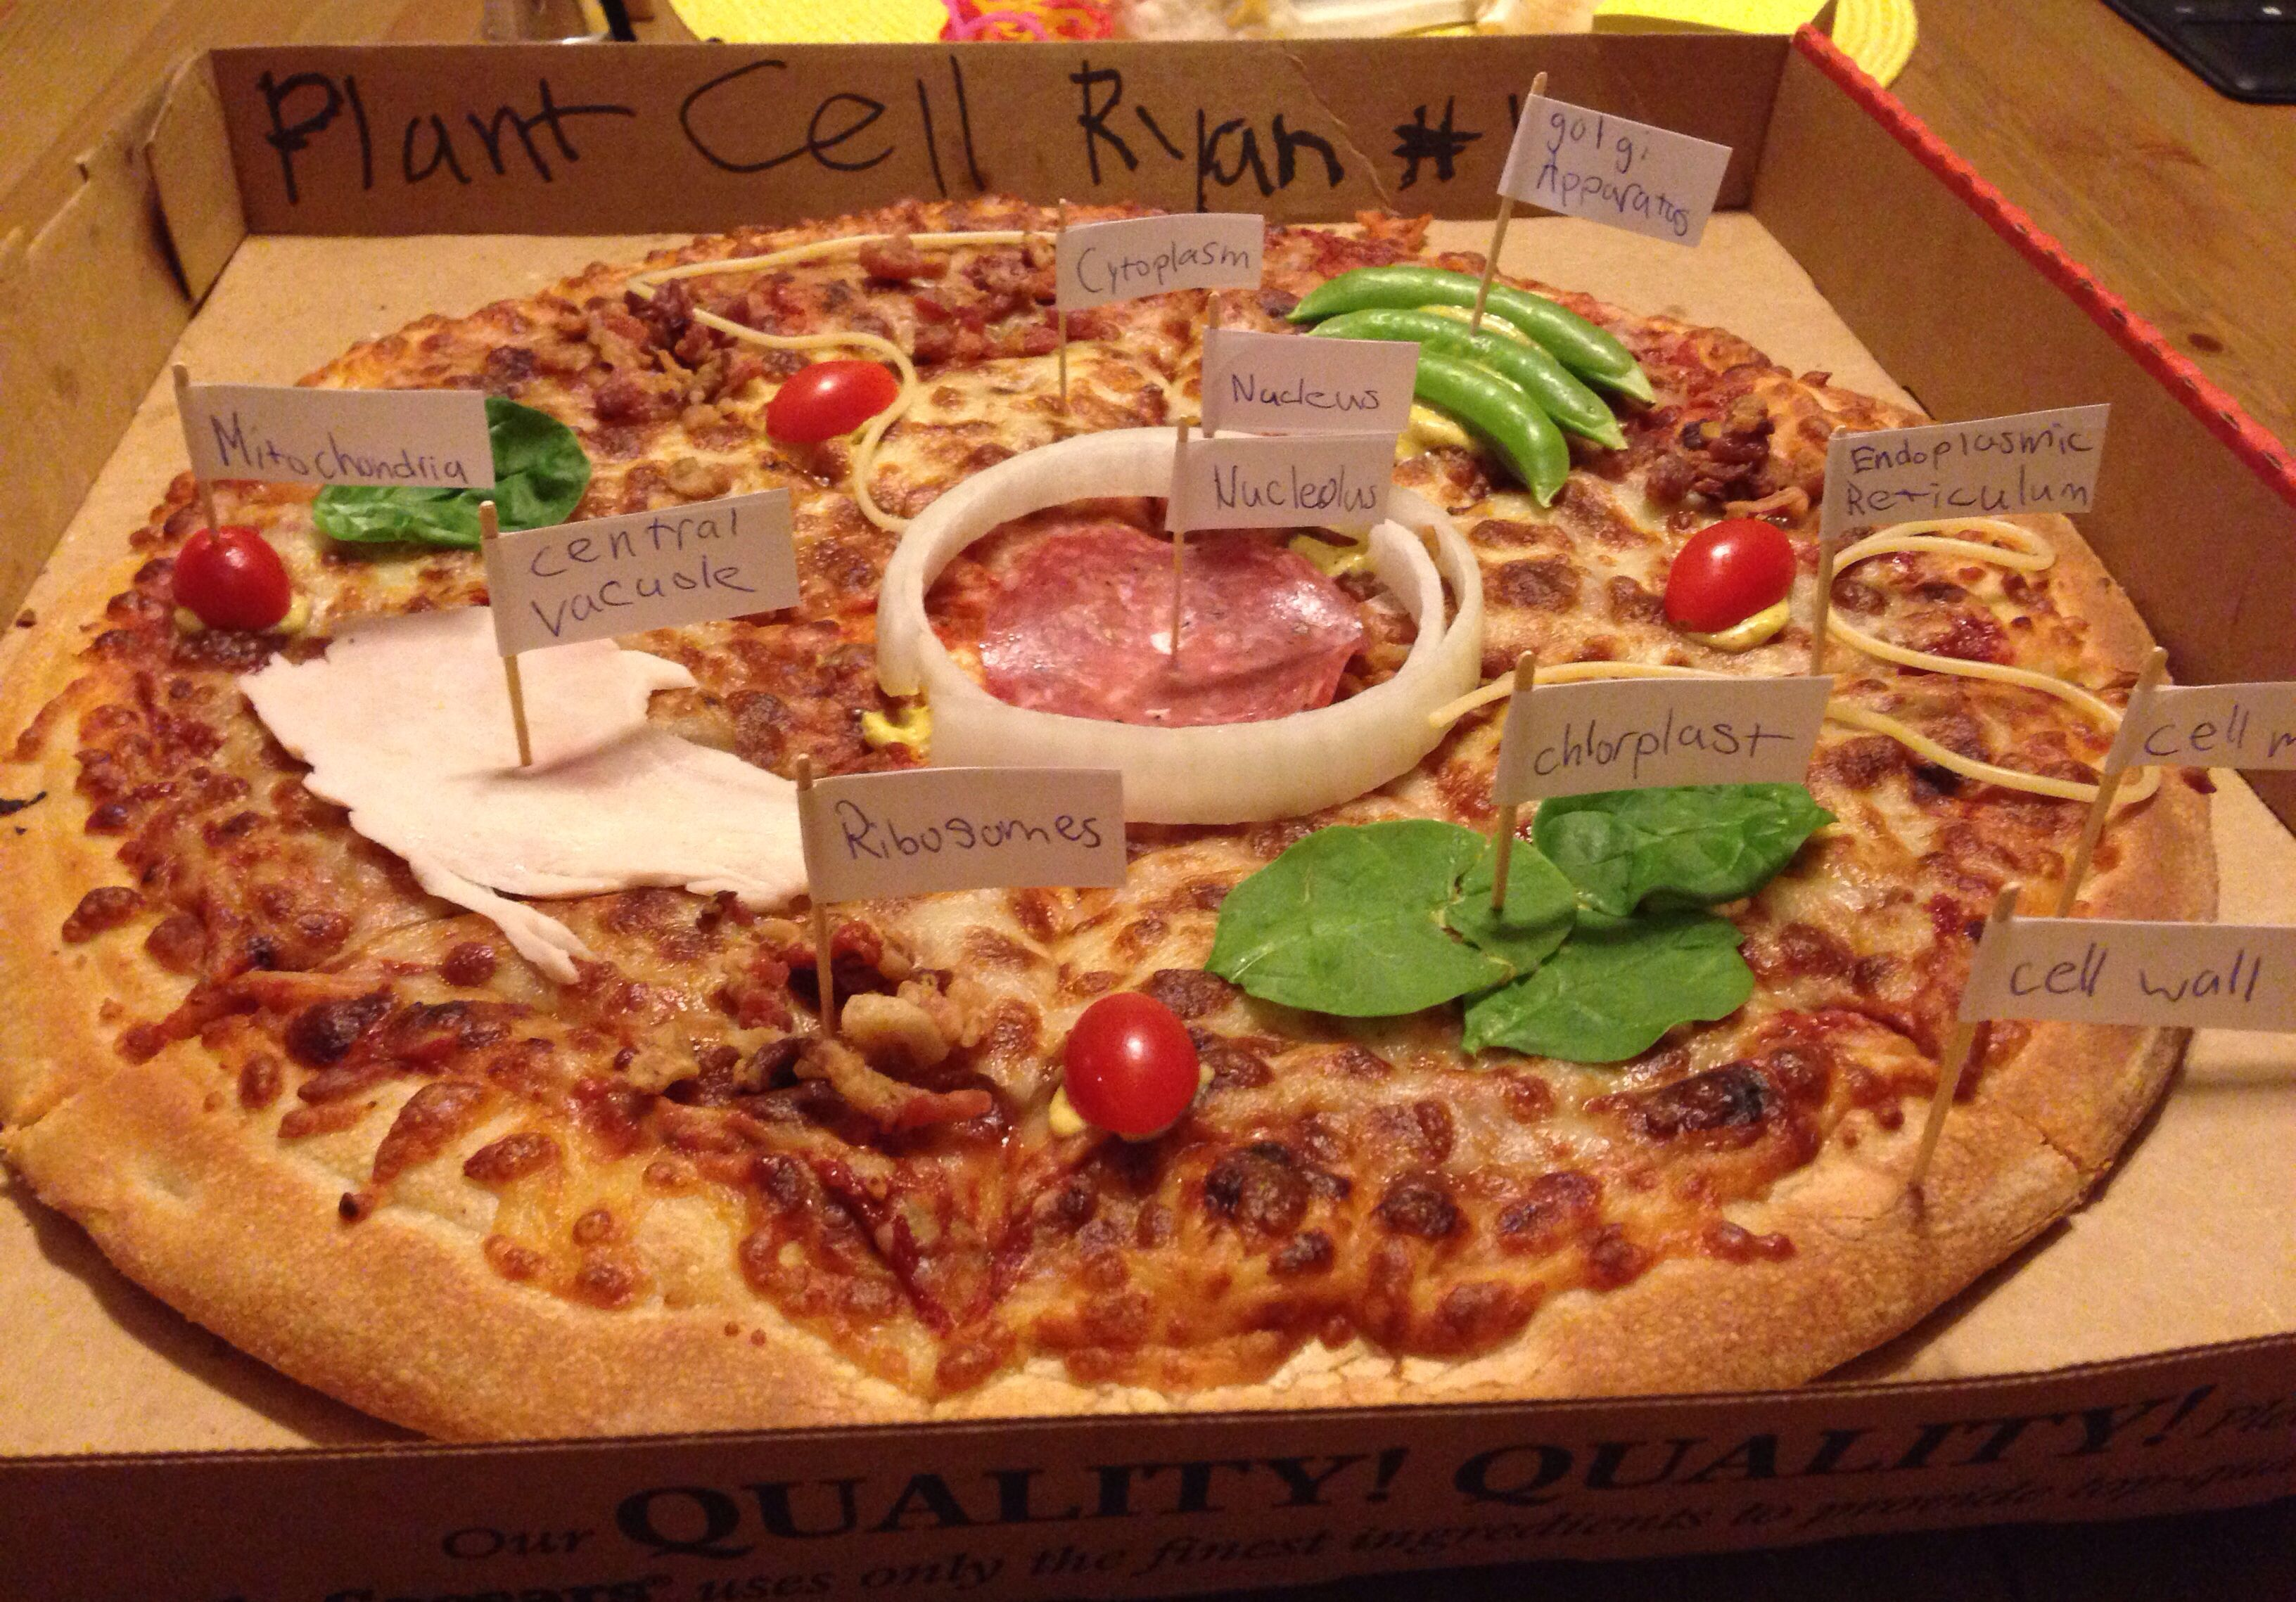 Plant Cell Pizza Model Doing This With An Animal Cell